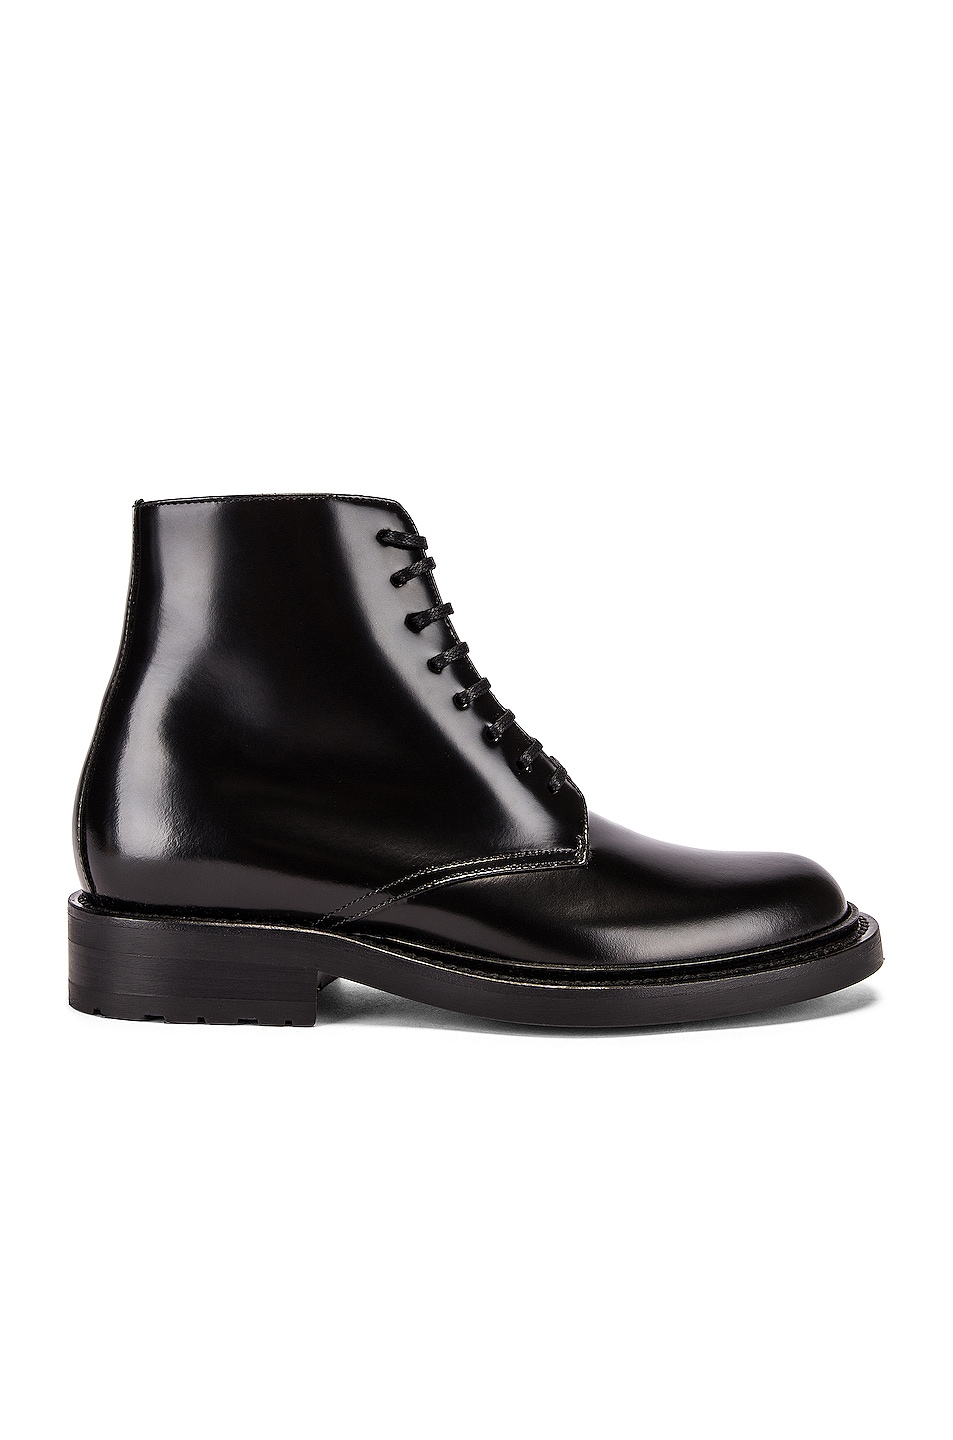 Image 1 of Saint Laurent Army Lace Up Leather Booties in Black